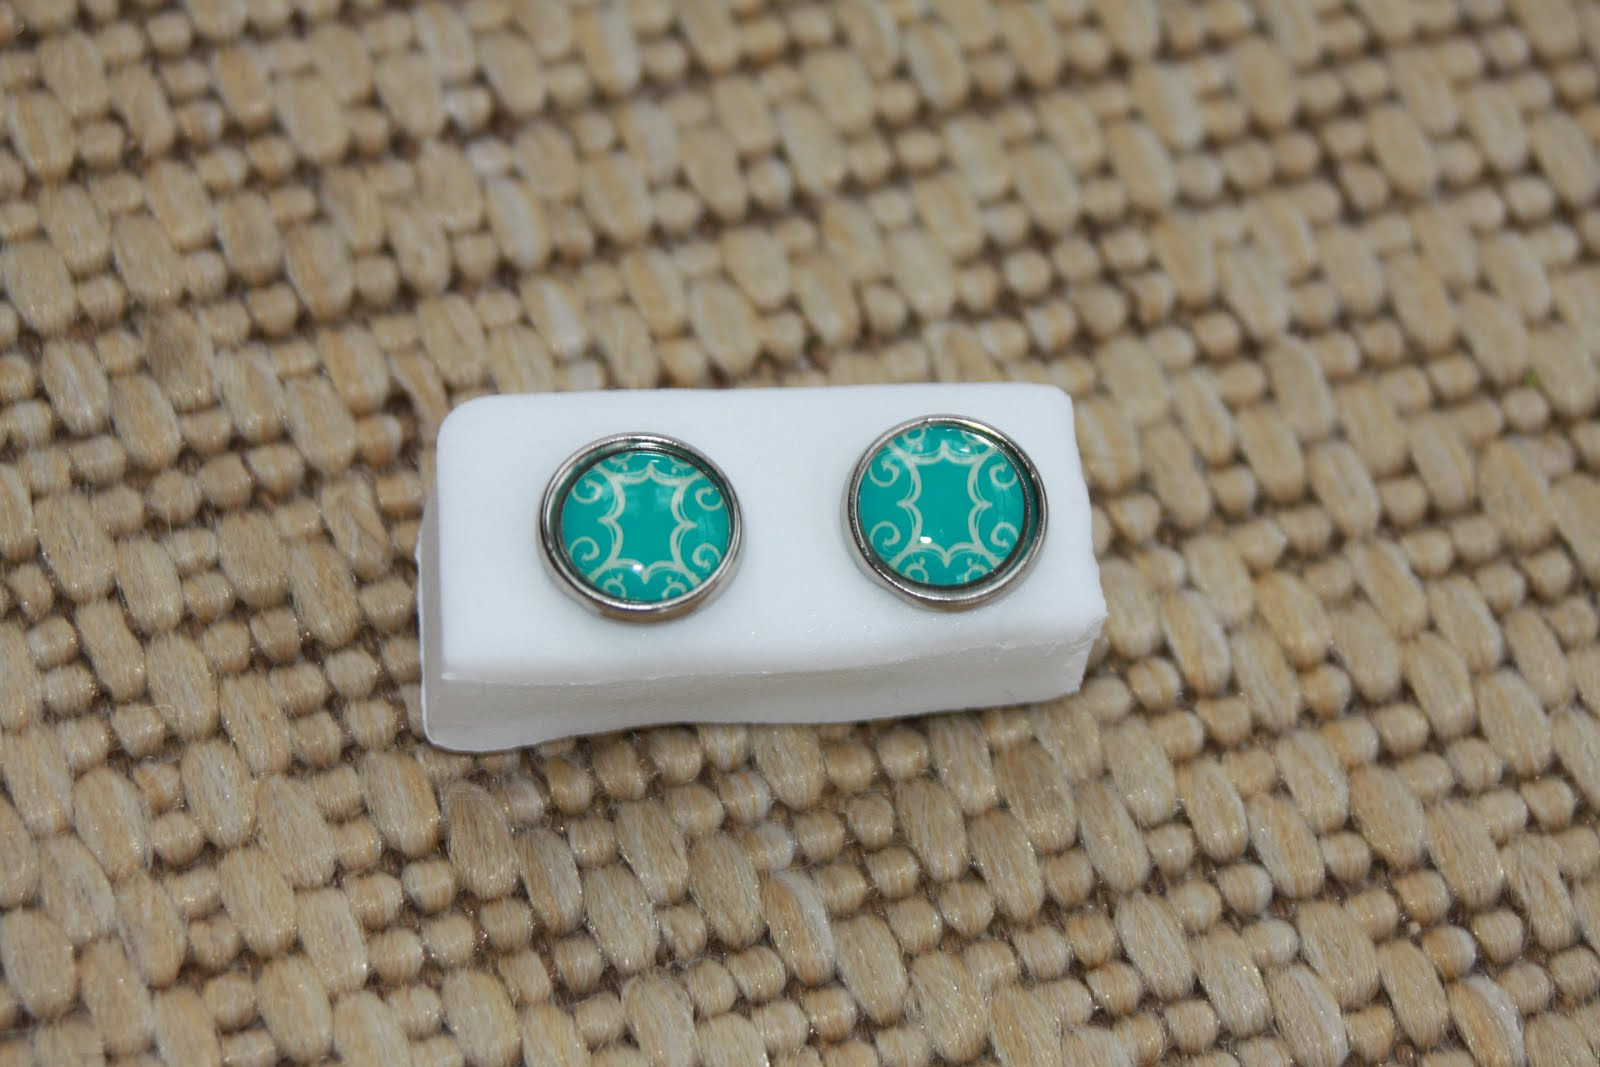 Silver rimmed turquoise and white frames